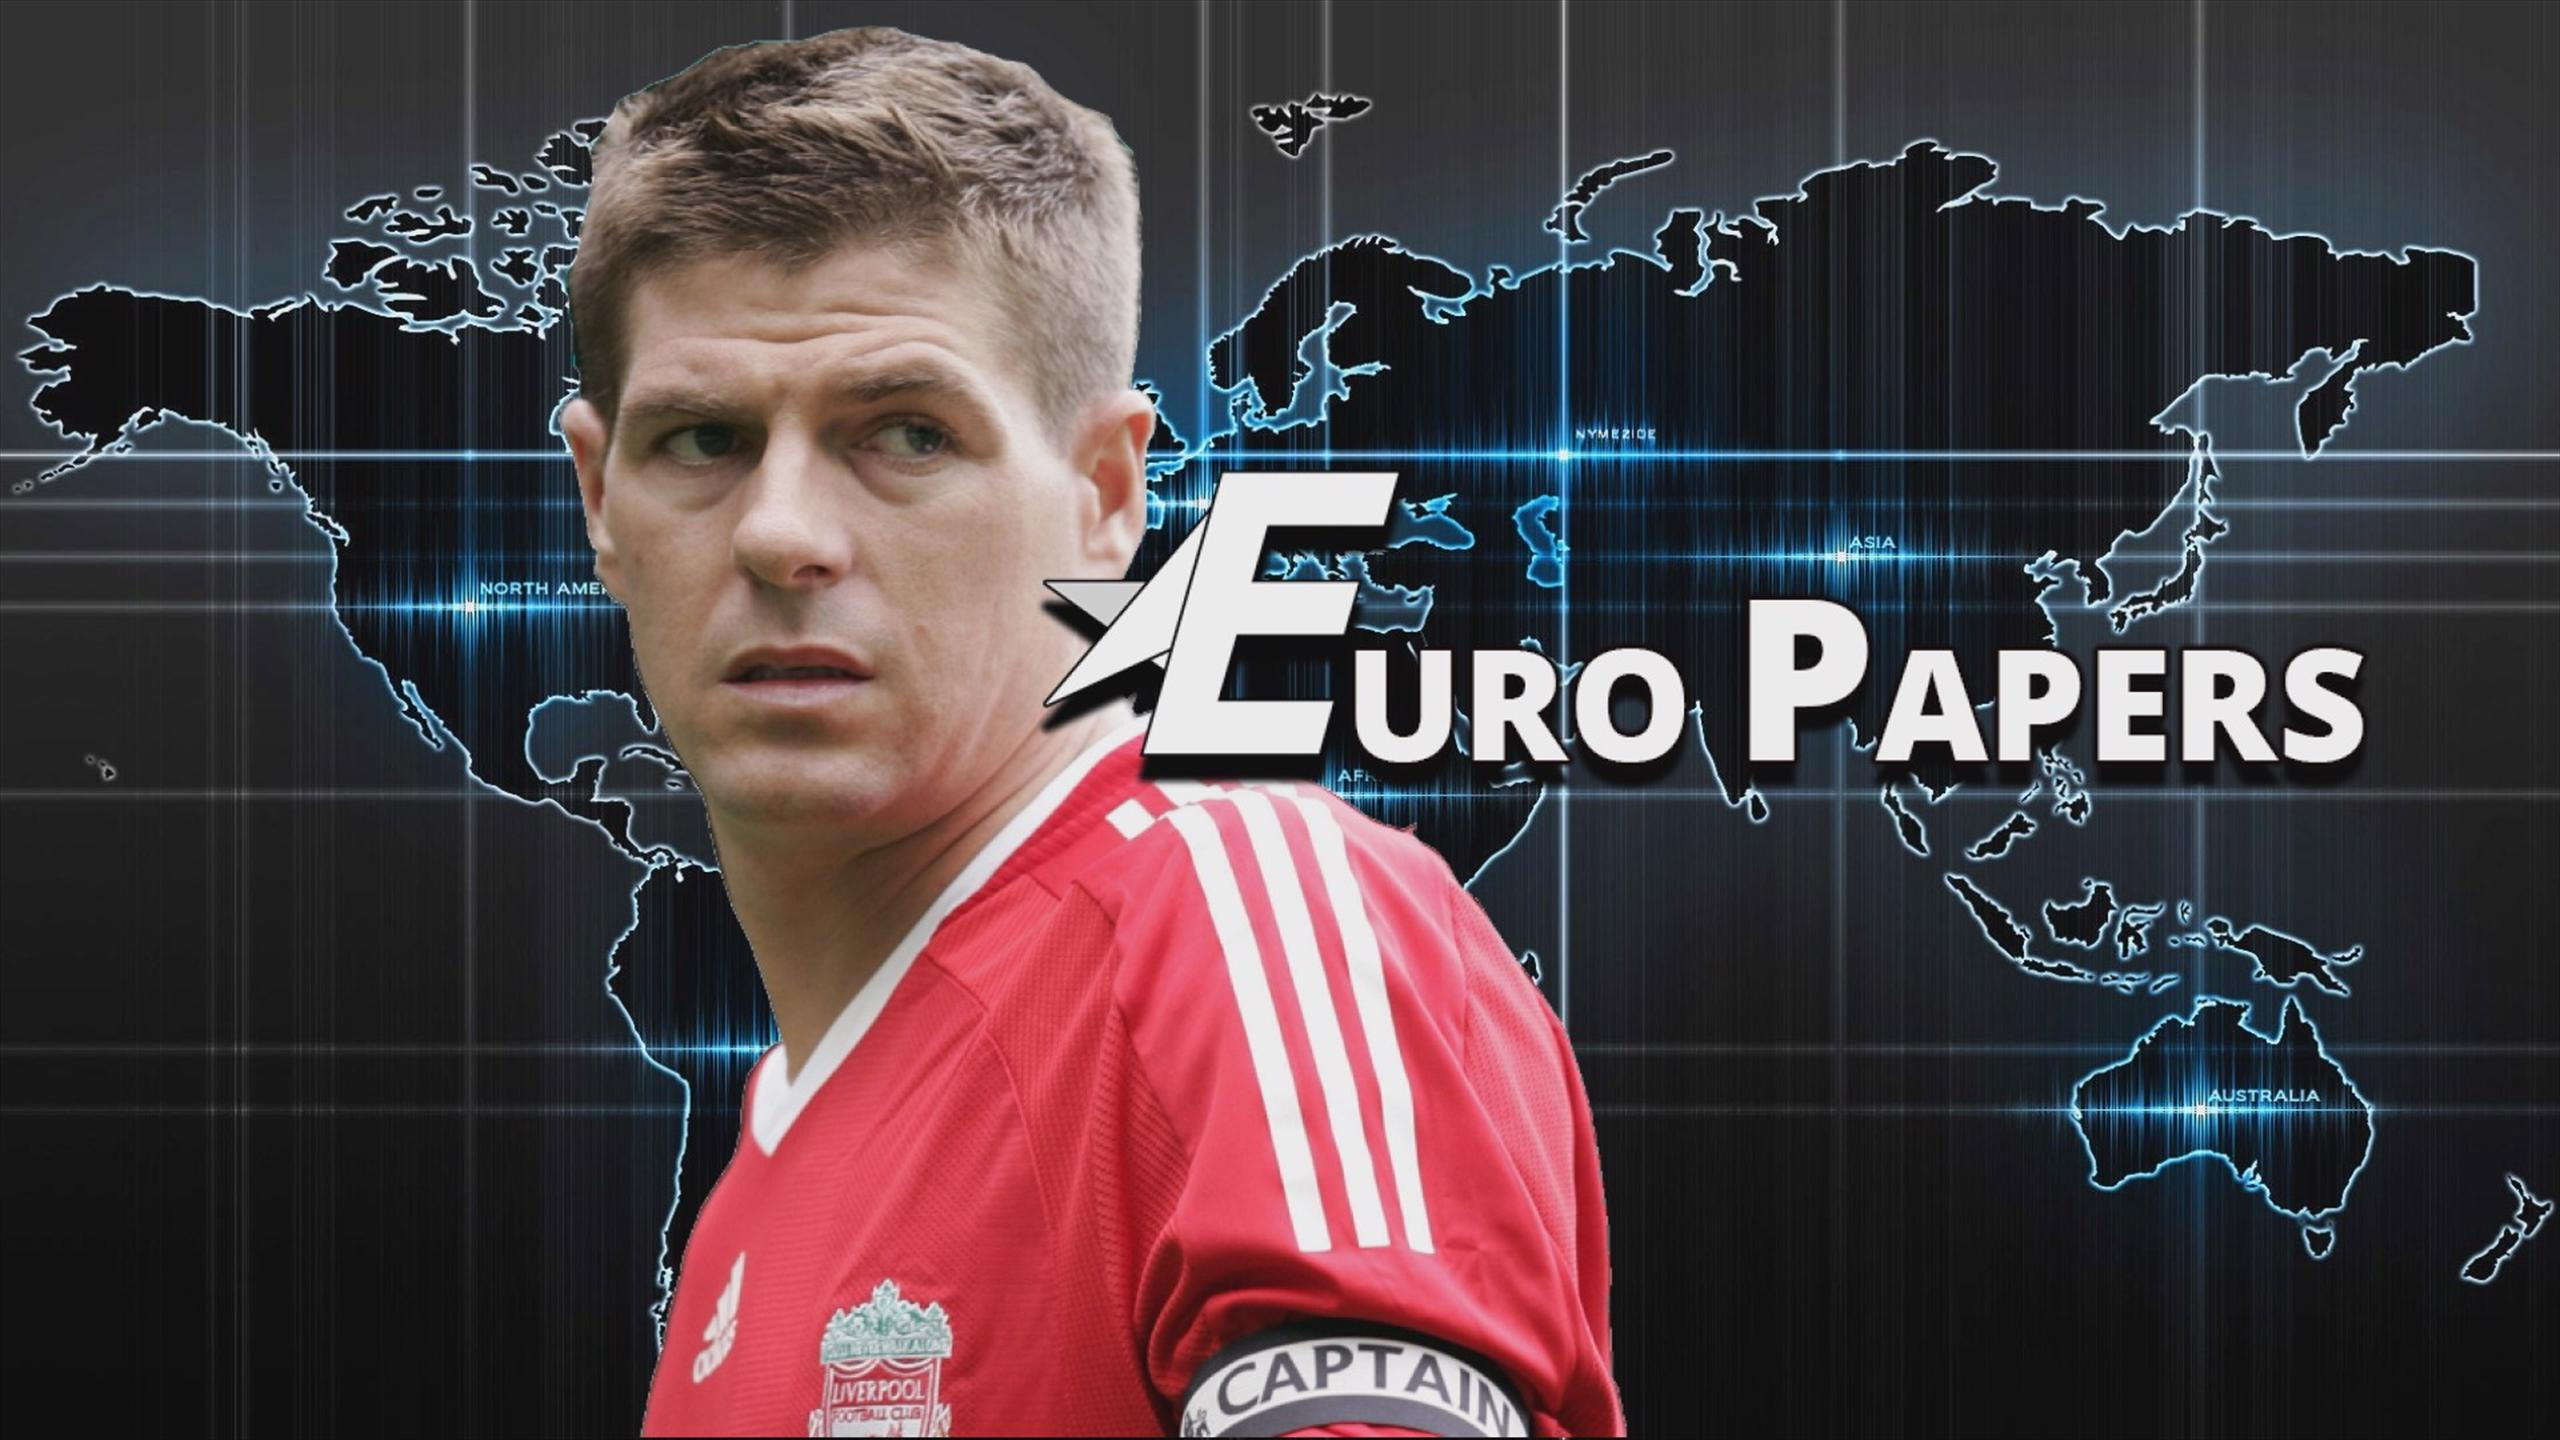 Euro Papers: The club that almost signed Steven Gerrard